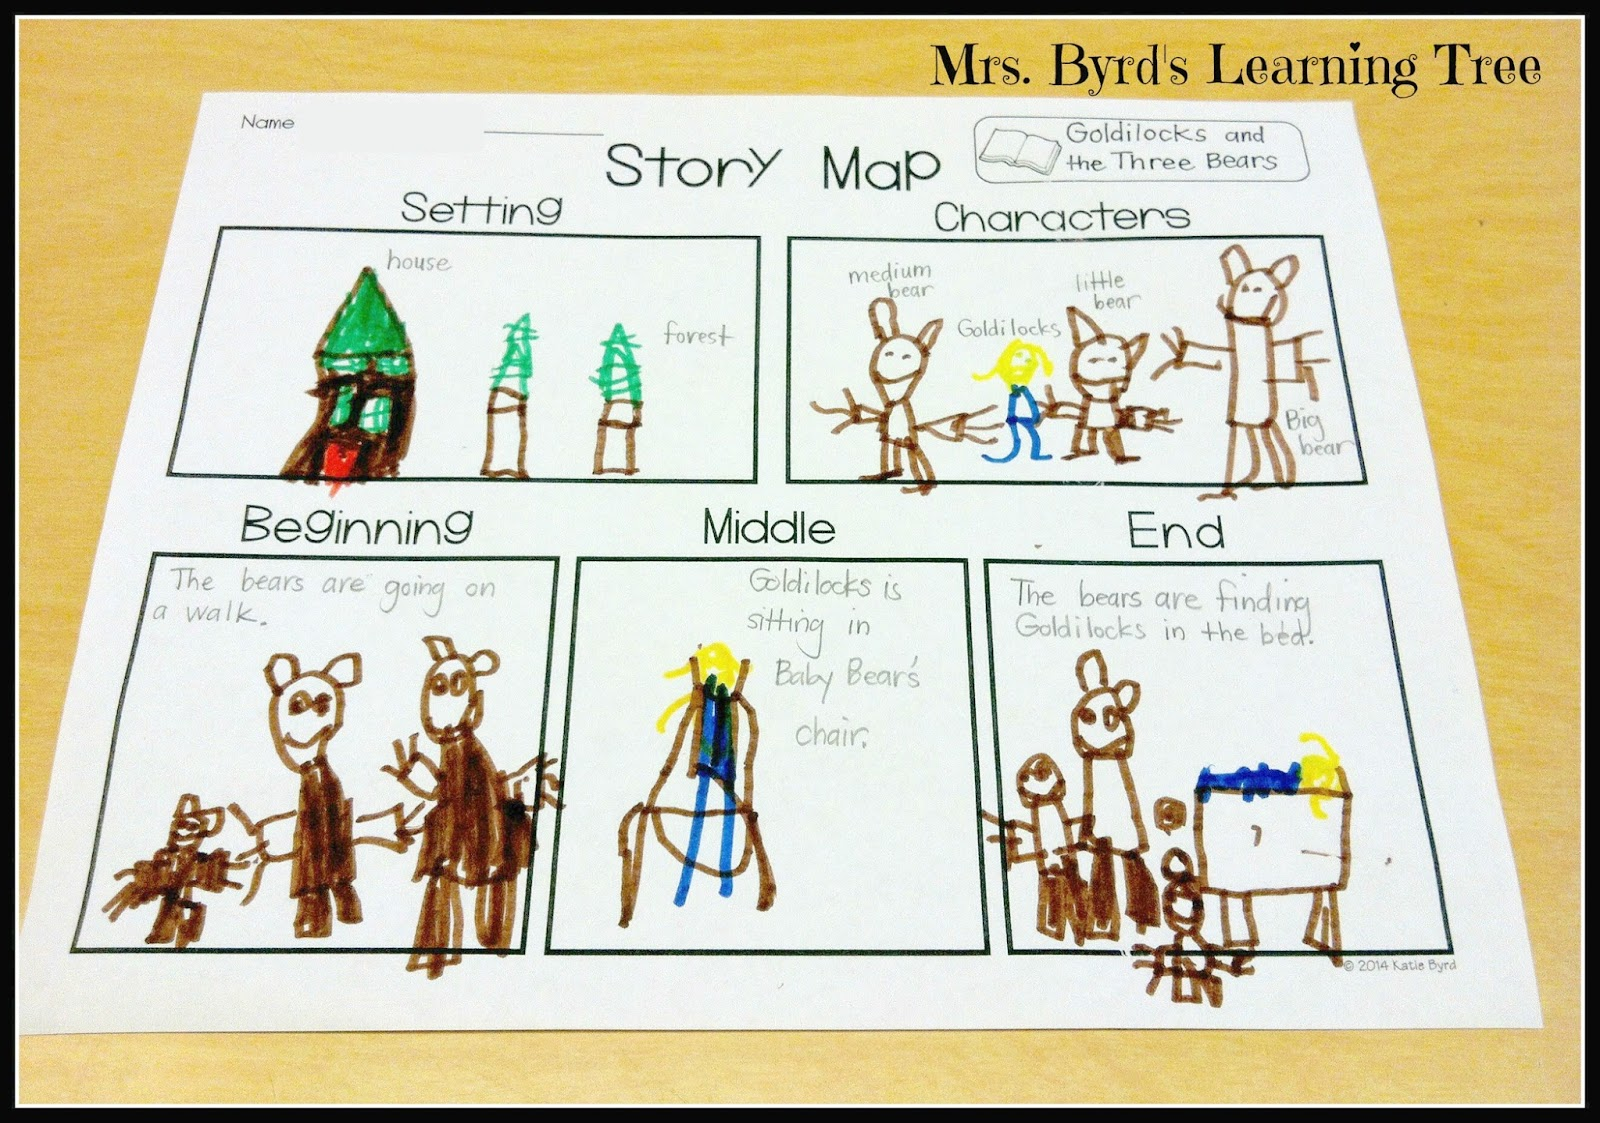 Mrs byrds learning tree story map freebie we are starting our unit on bears last week we read many versions of goldilocks and the three bears part of our work on the story included this story map pronofoot35fo Image collections